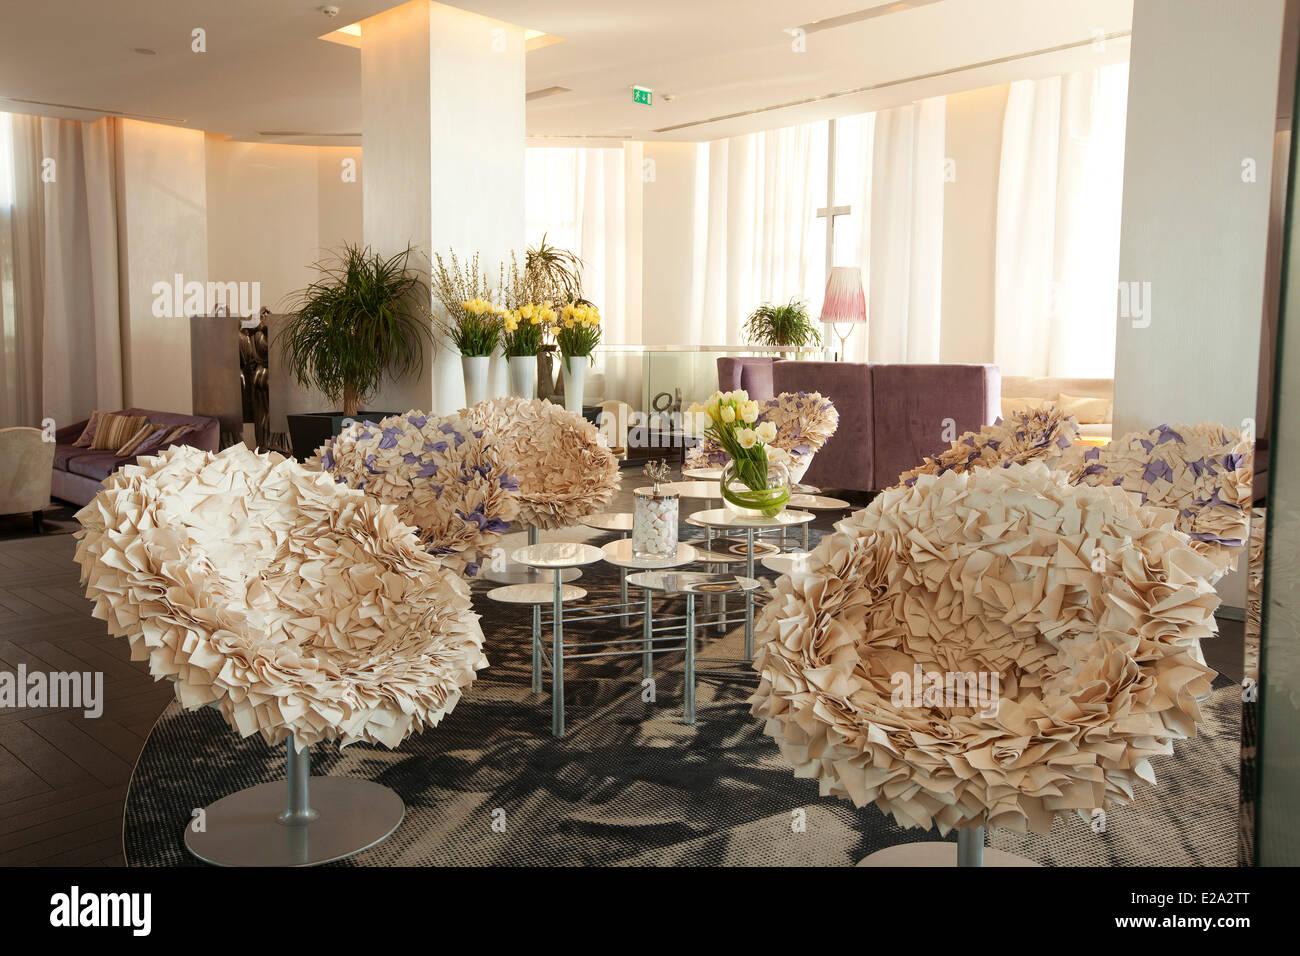 France, Alpes Maritimes, Cannes, Hotel Radisson Blu - Stock Image